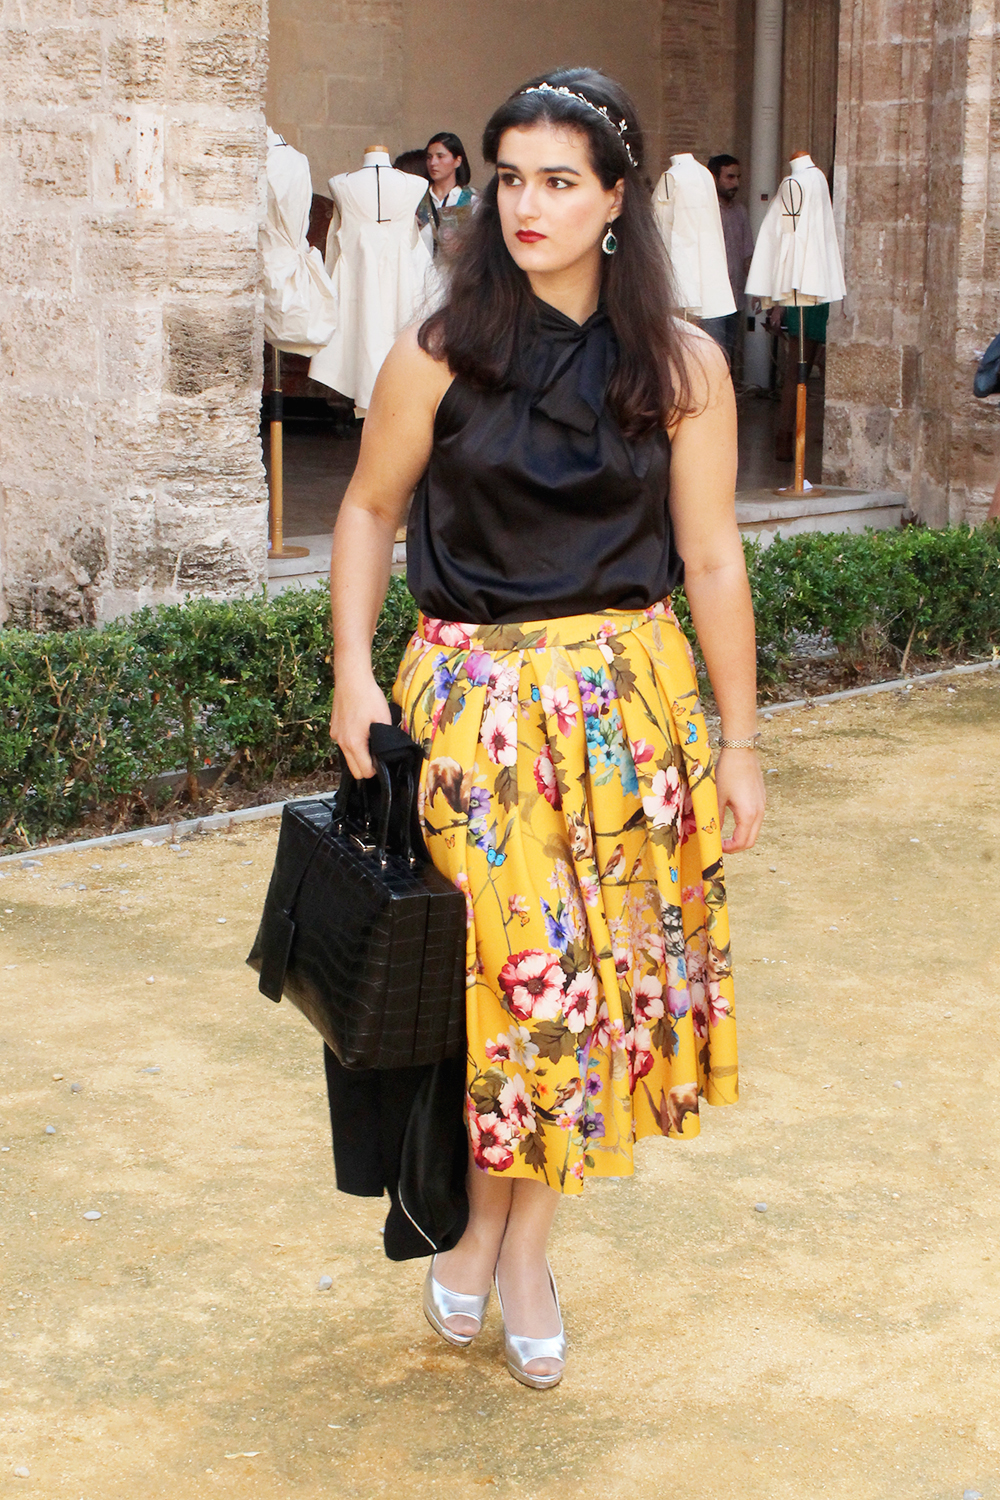 something fashion valencia fashion week VFW outfit D&G 50's inspired skirt, Dolce Gabanna circle skirt vintage fairytale yellow floral pattern